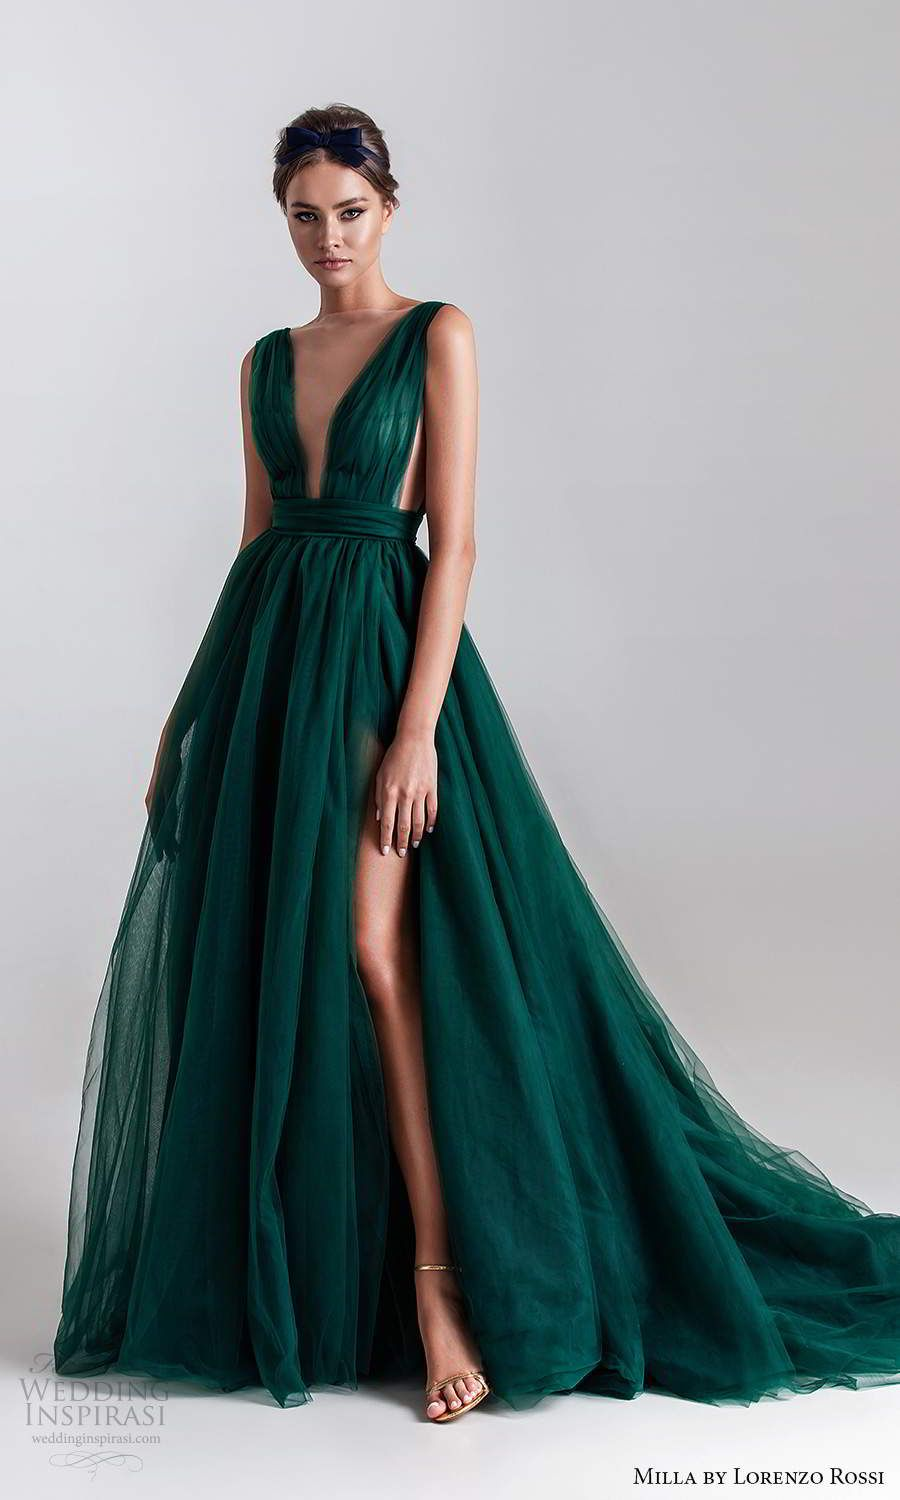 Milla by Lorenzo Rossi Special Occasion Dresses |